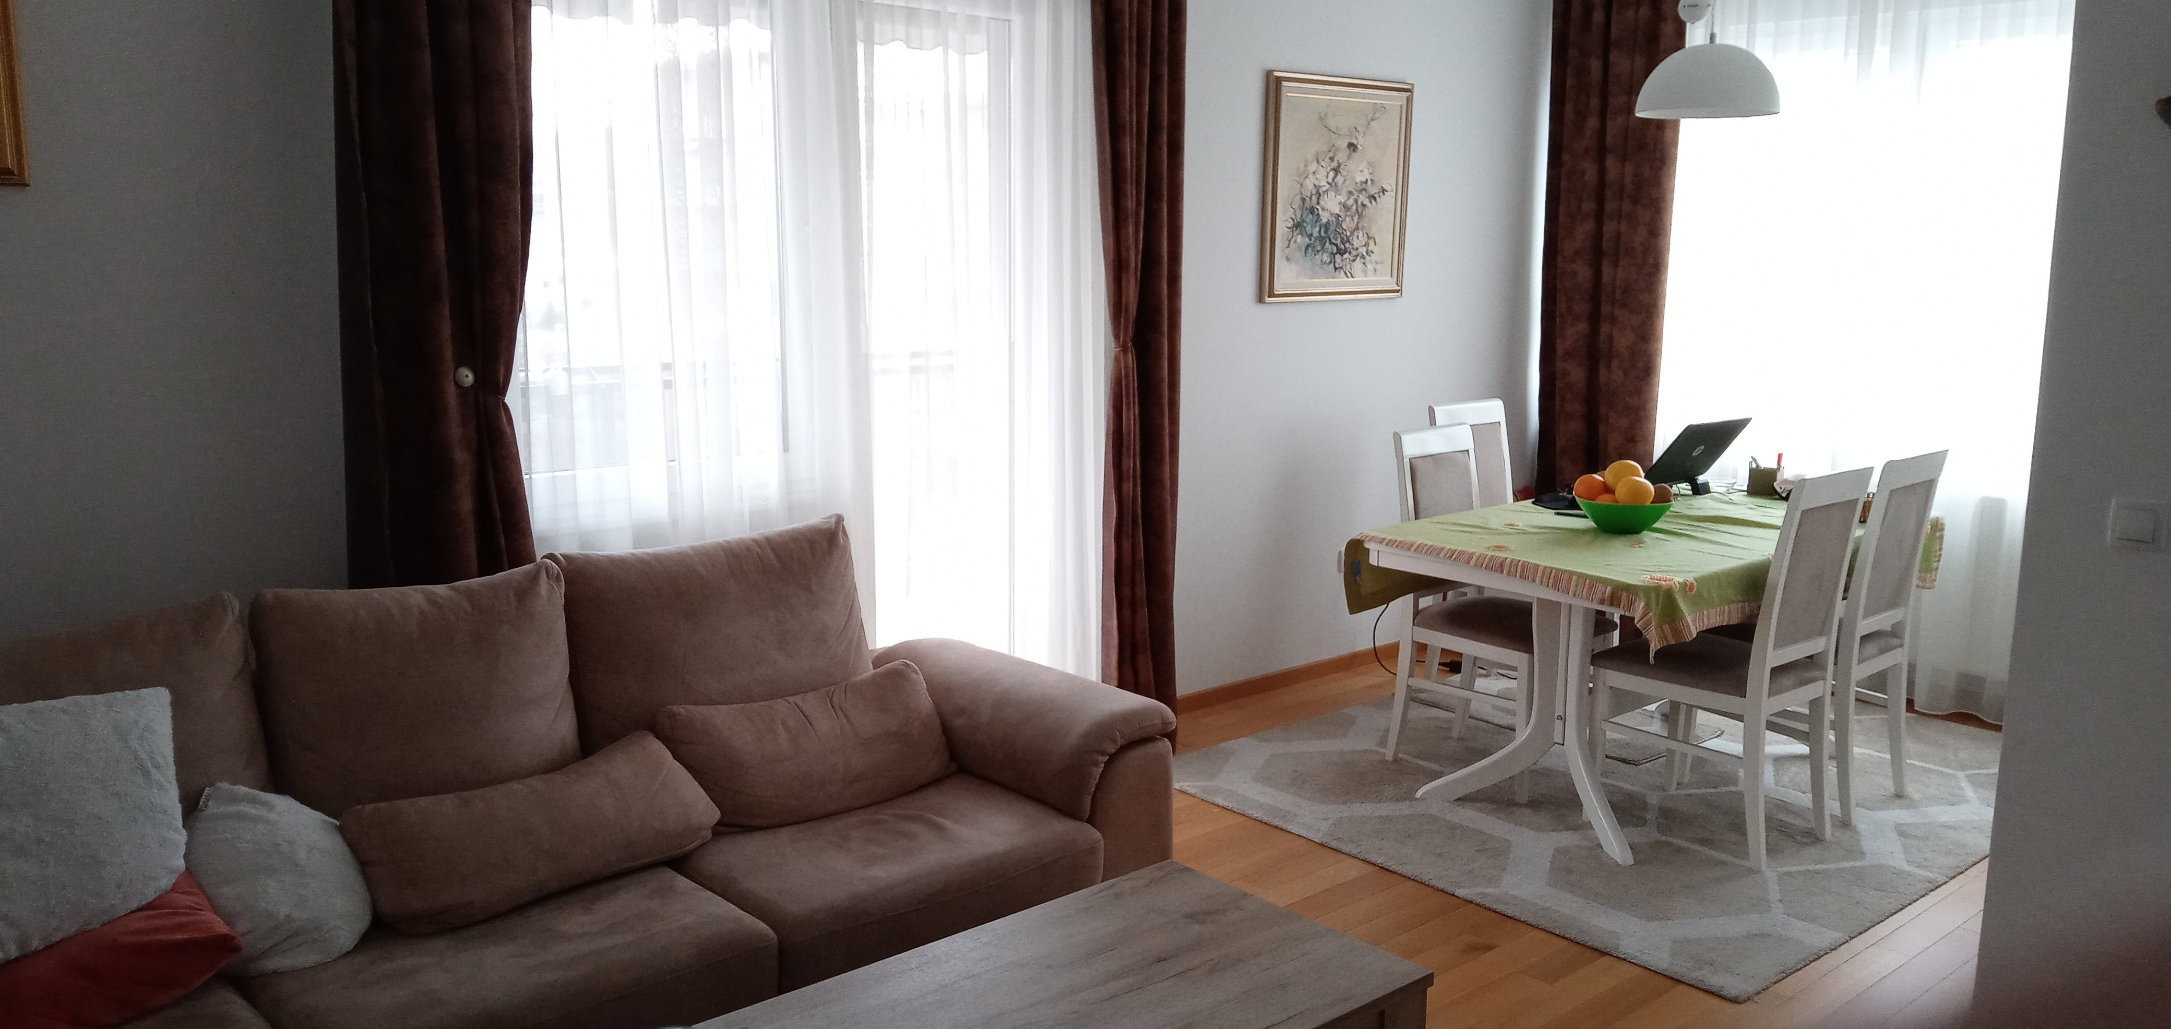 Slovenia: Ministry of Economy proposes stricter rules for renting flats and houses